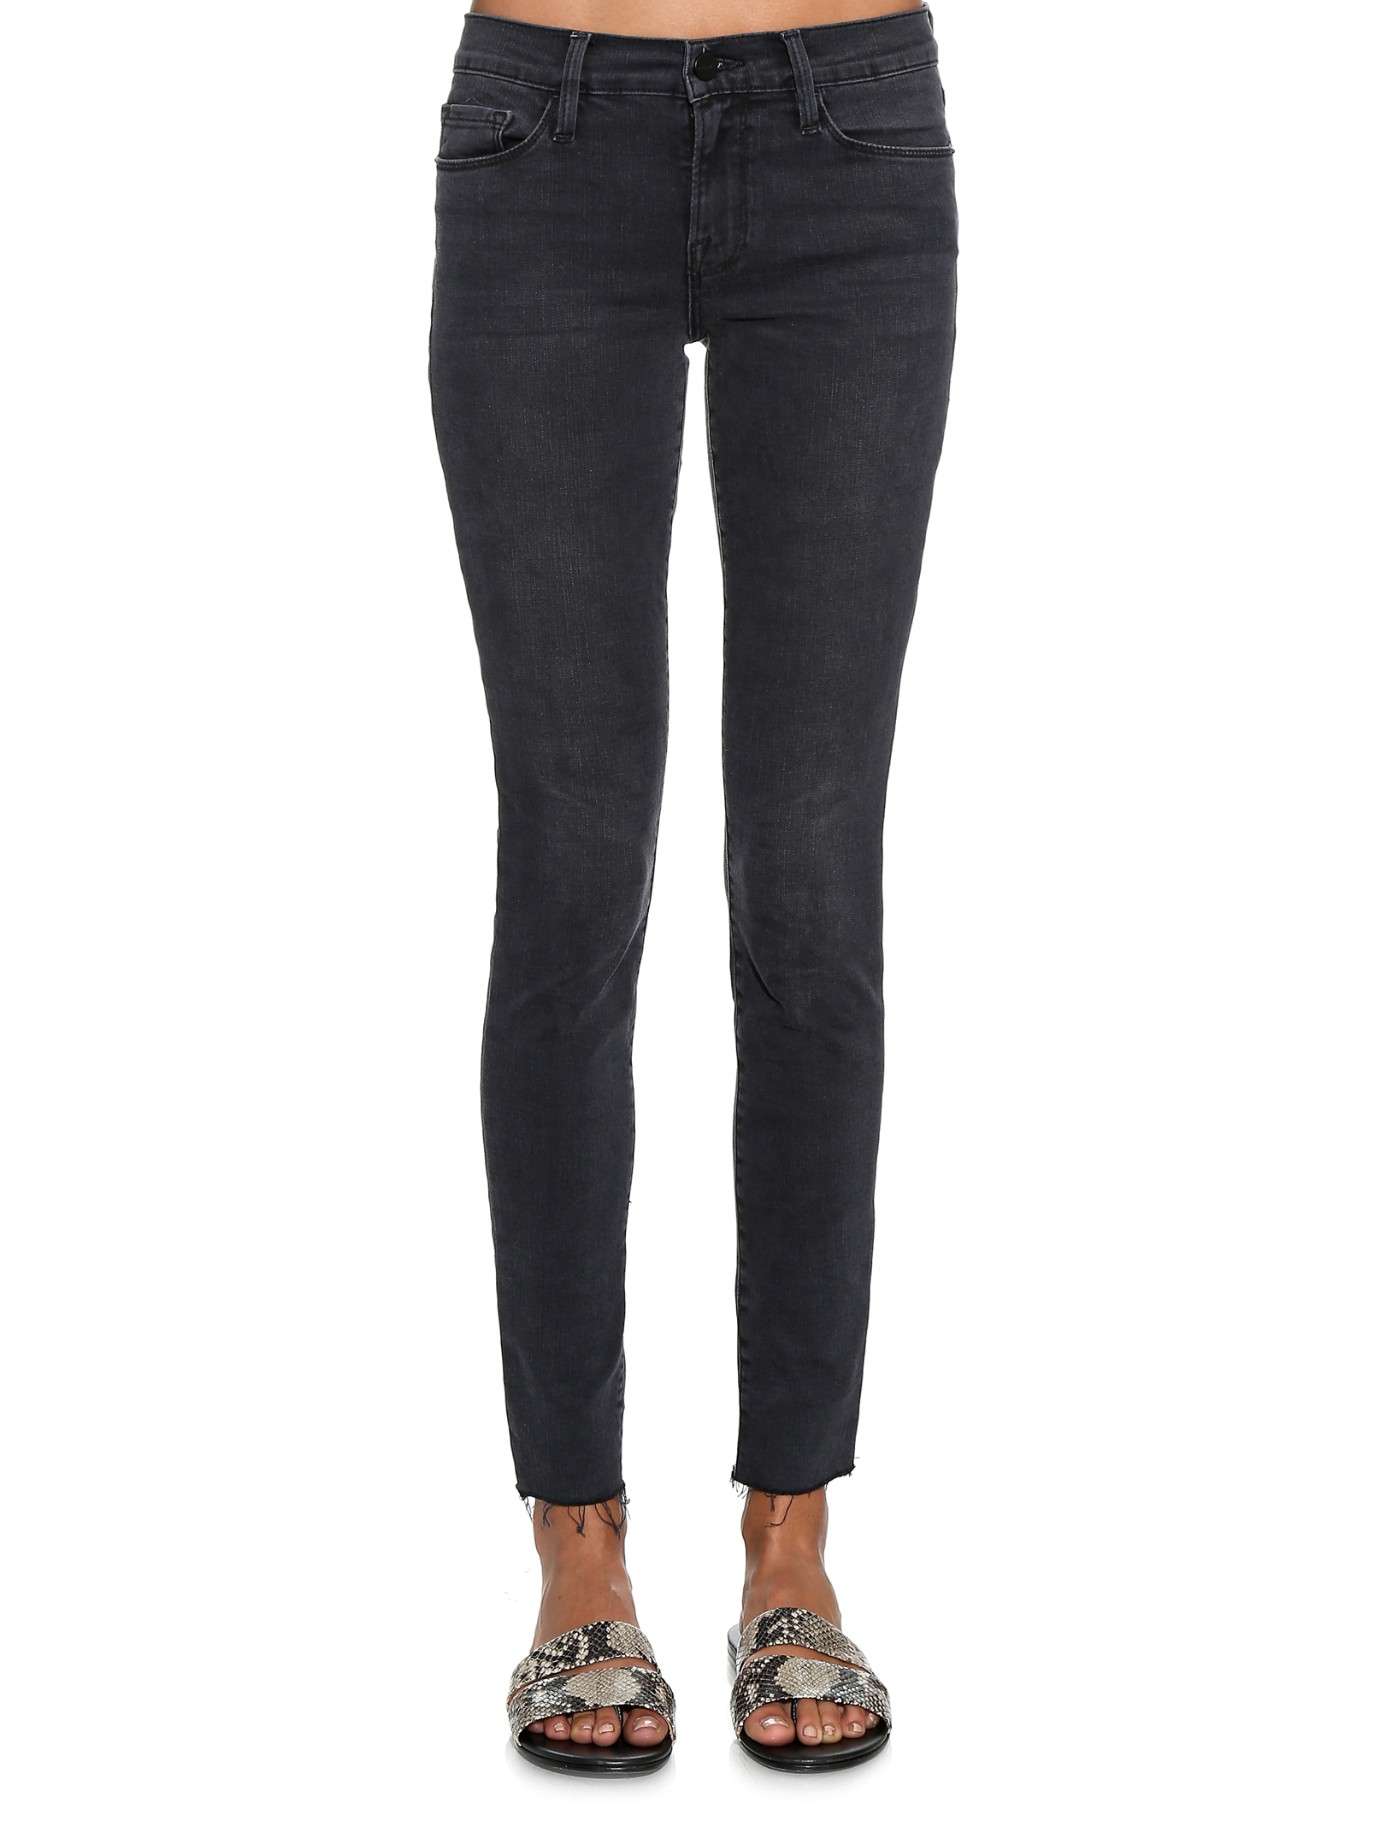 Le Skinny De Jeanne Distressed High-rise Jeans - Dark gray Frame Denim sibMnxW